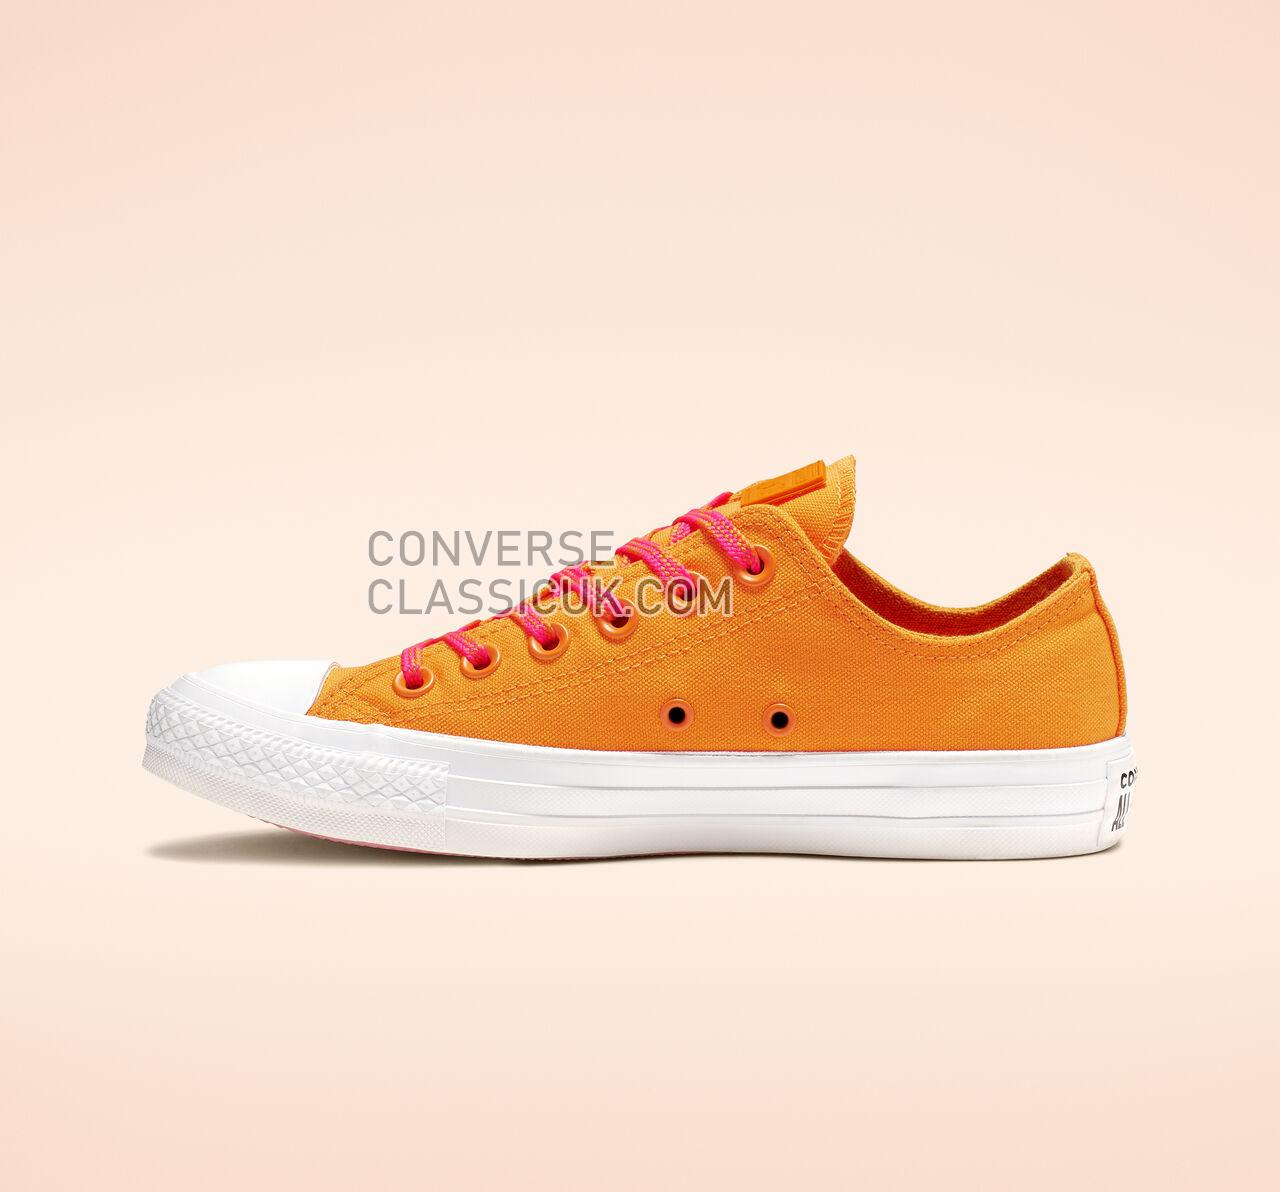 Converse Chuck Taylor All Star Glow Up Low Top Womens 564115C Orange Rind/Racer Pink/White Shoes